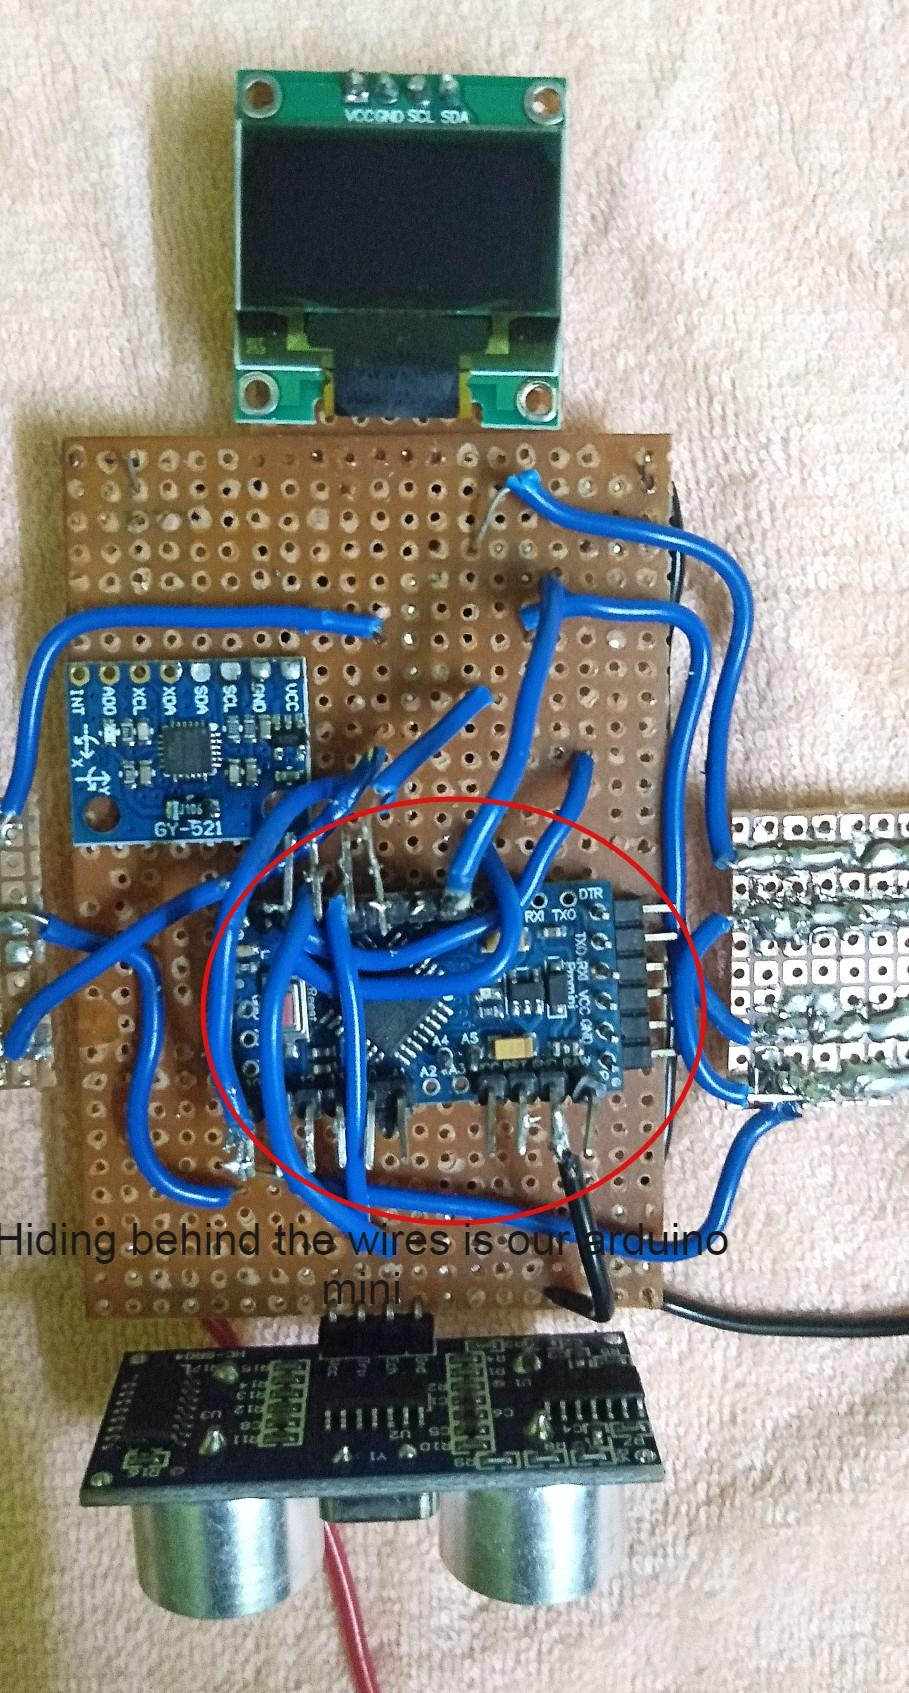 Hardware: PerfBoard Assembly (Arduino)